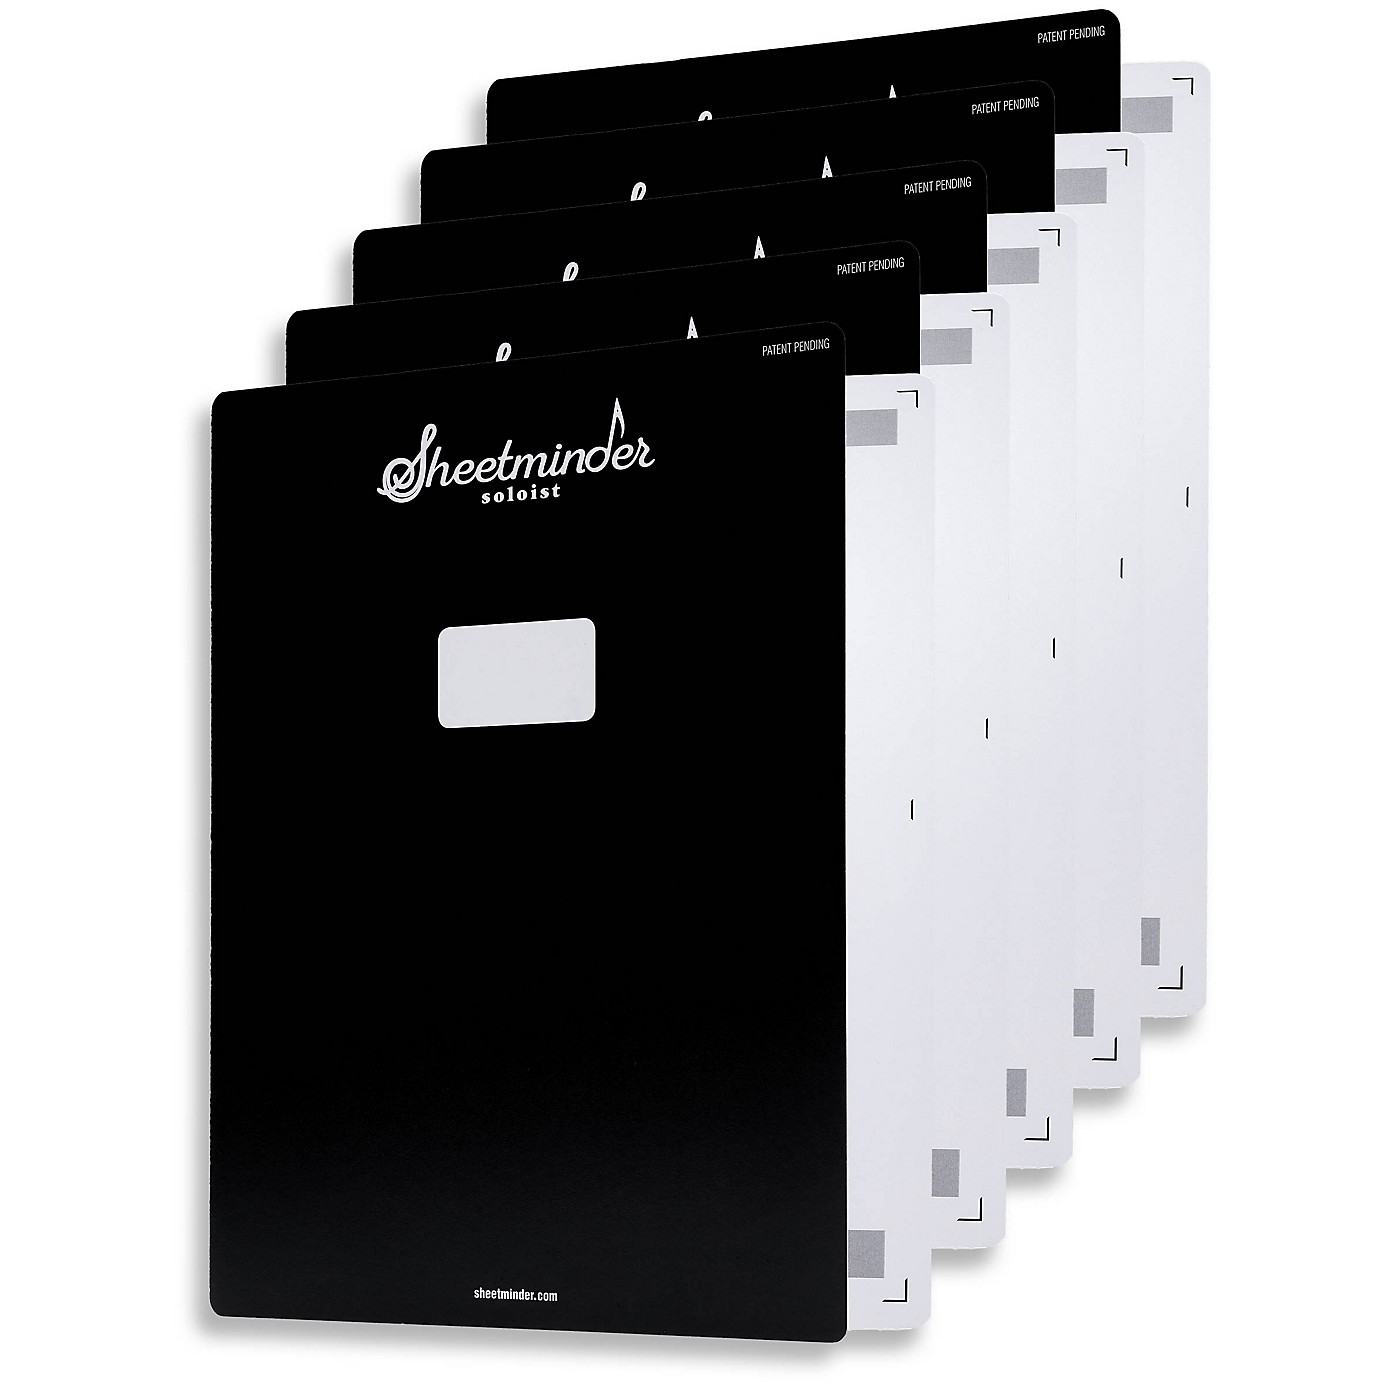 Hal Leonard Sheetminder Soloist Sheet Music Folder 5-Pack thumbnail